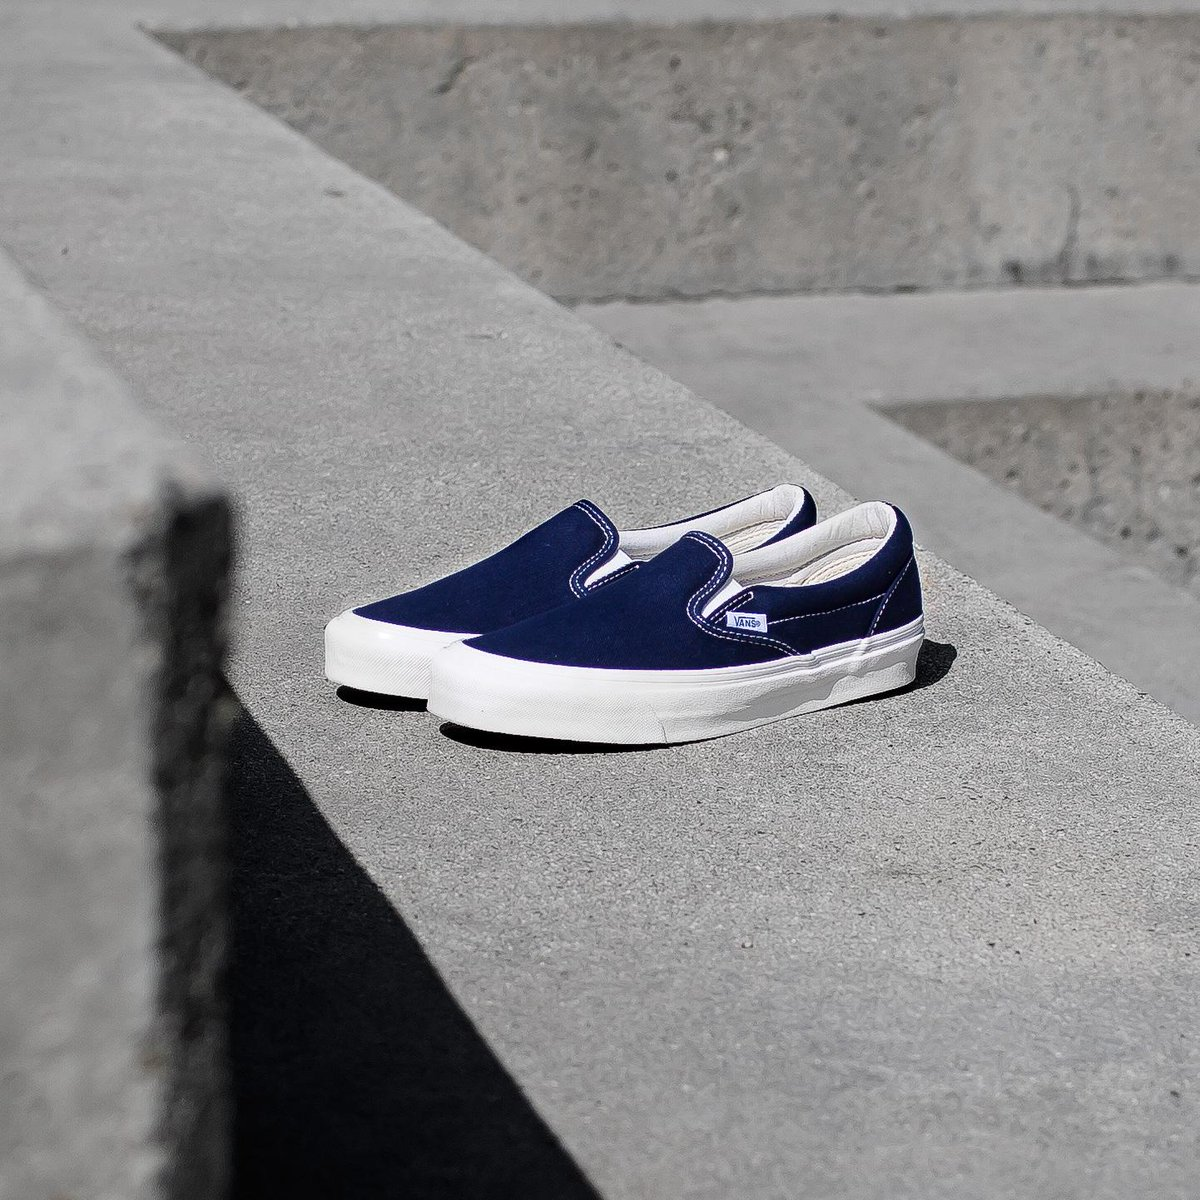 Vans Vault OG Canvas Classic Slip-On in Peacoat available online now. ... 9fede877e